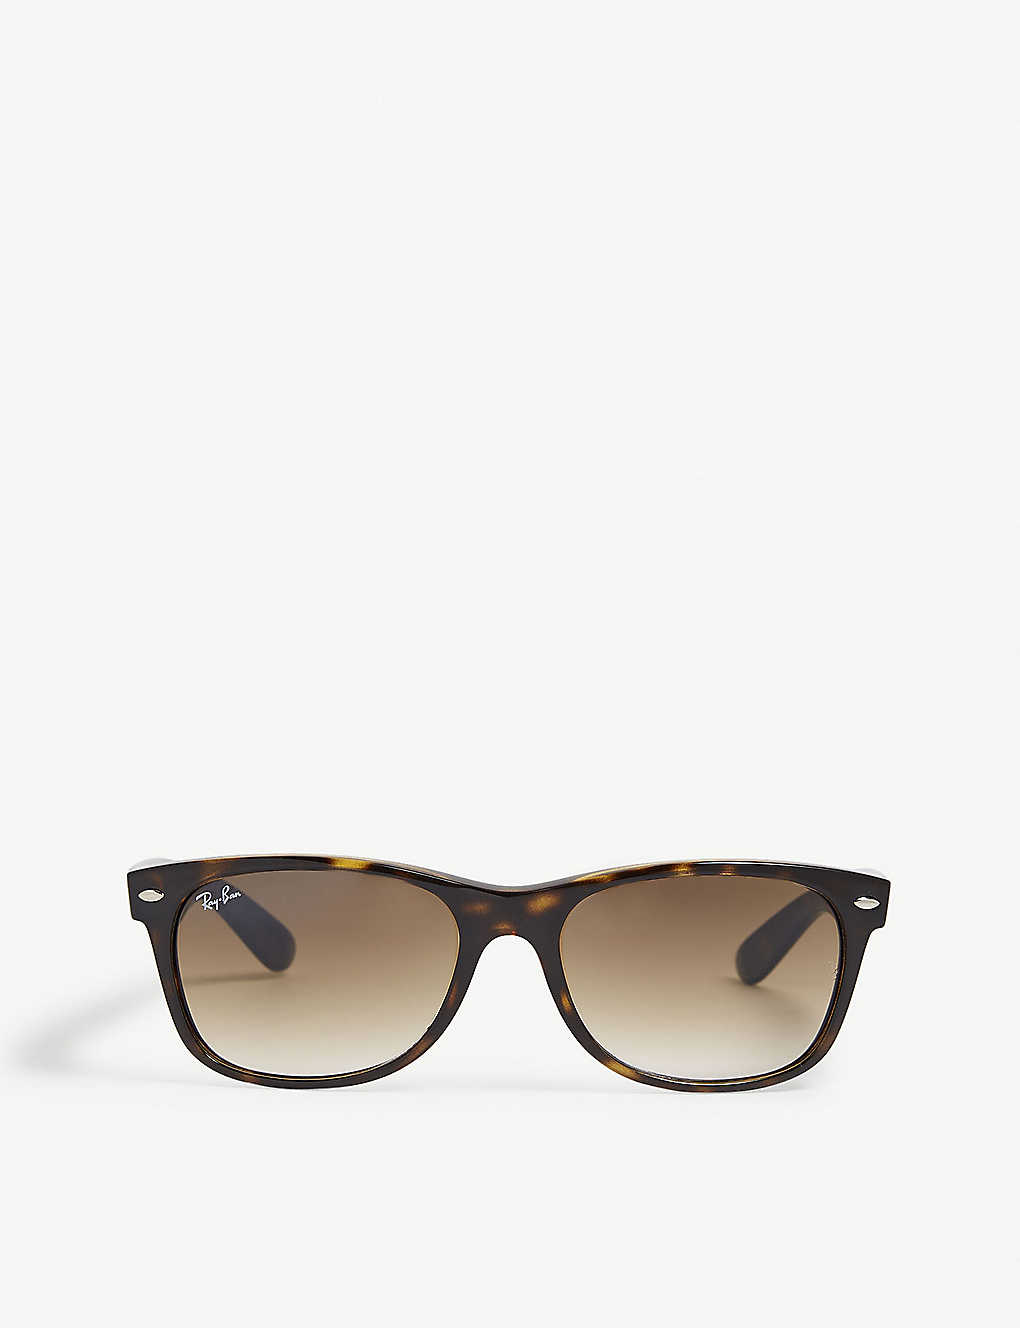 RAY-BAN - RB2132 New Wayfarer sunglasses  ccdbe6dba8c24